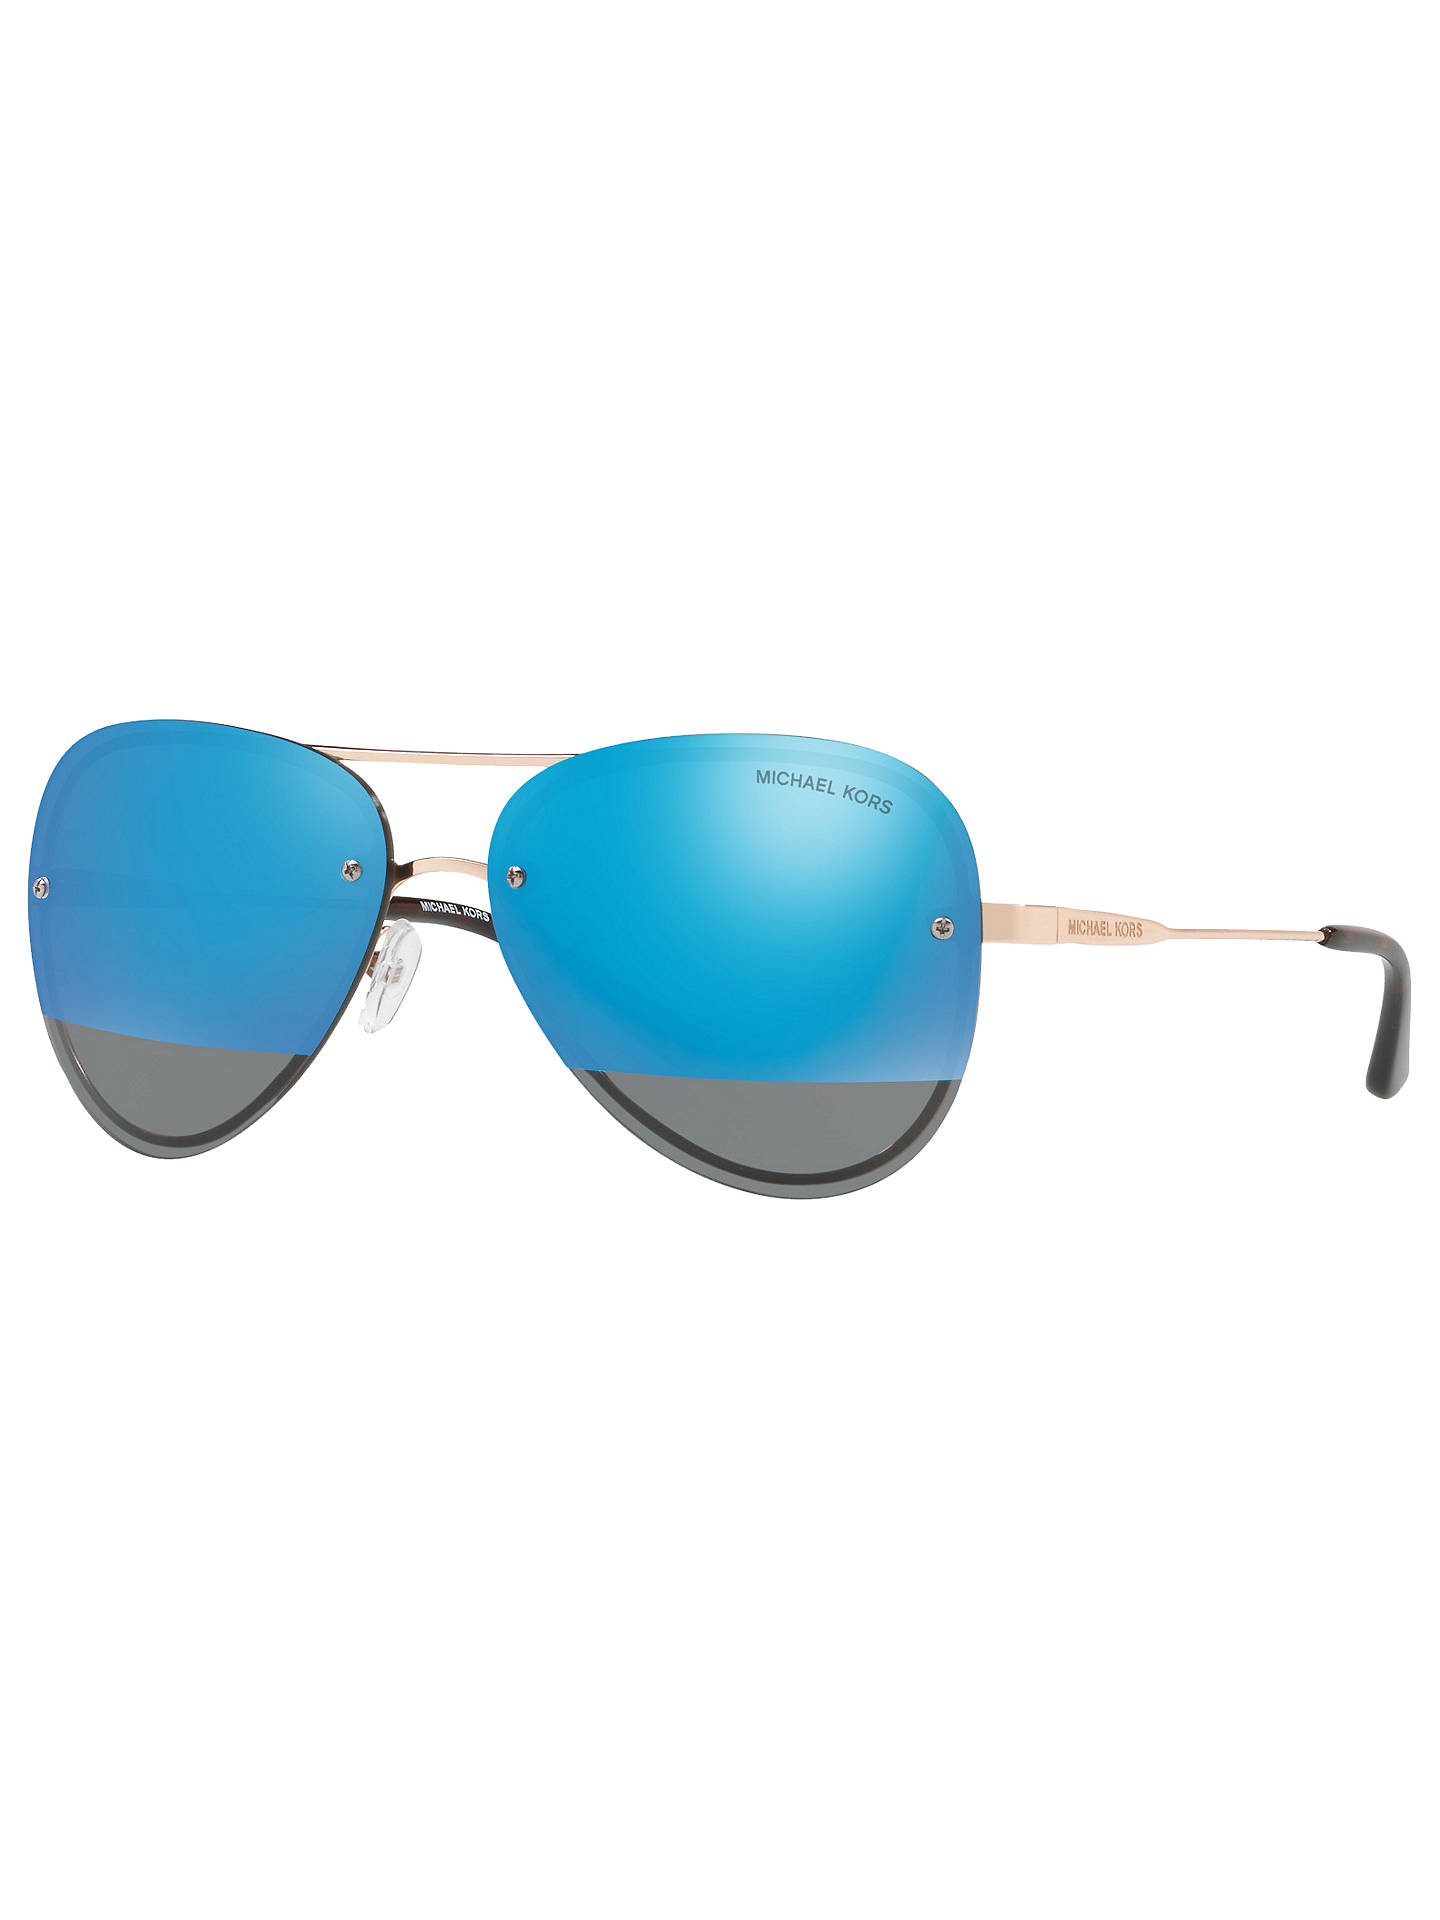 4efb2f54735b Buy Michael Kors MK1026 La Jolla Aviator Sunglasses